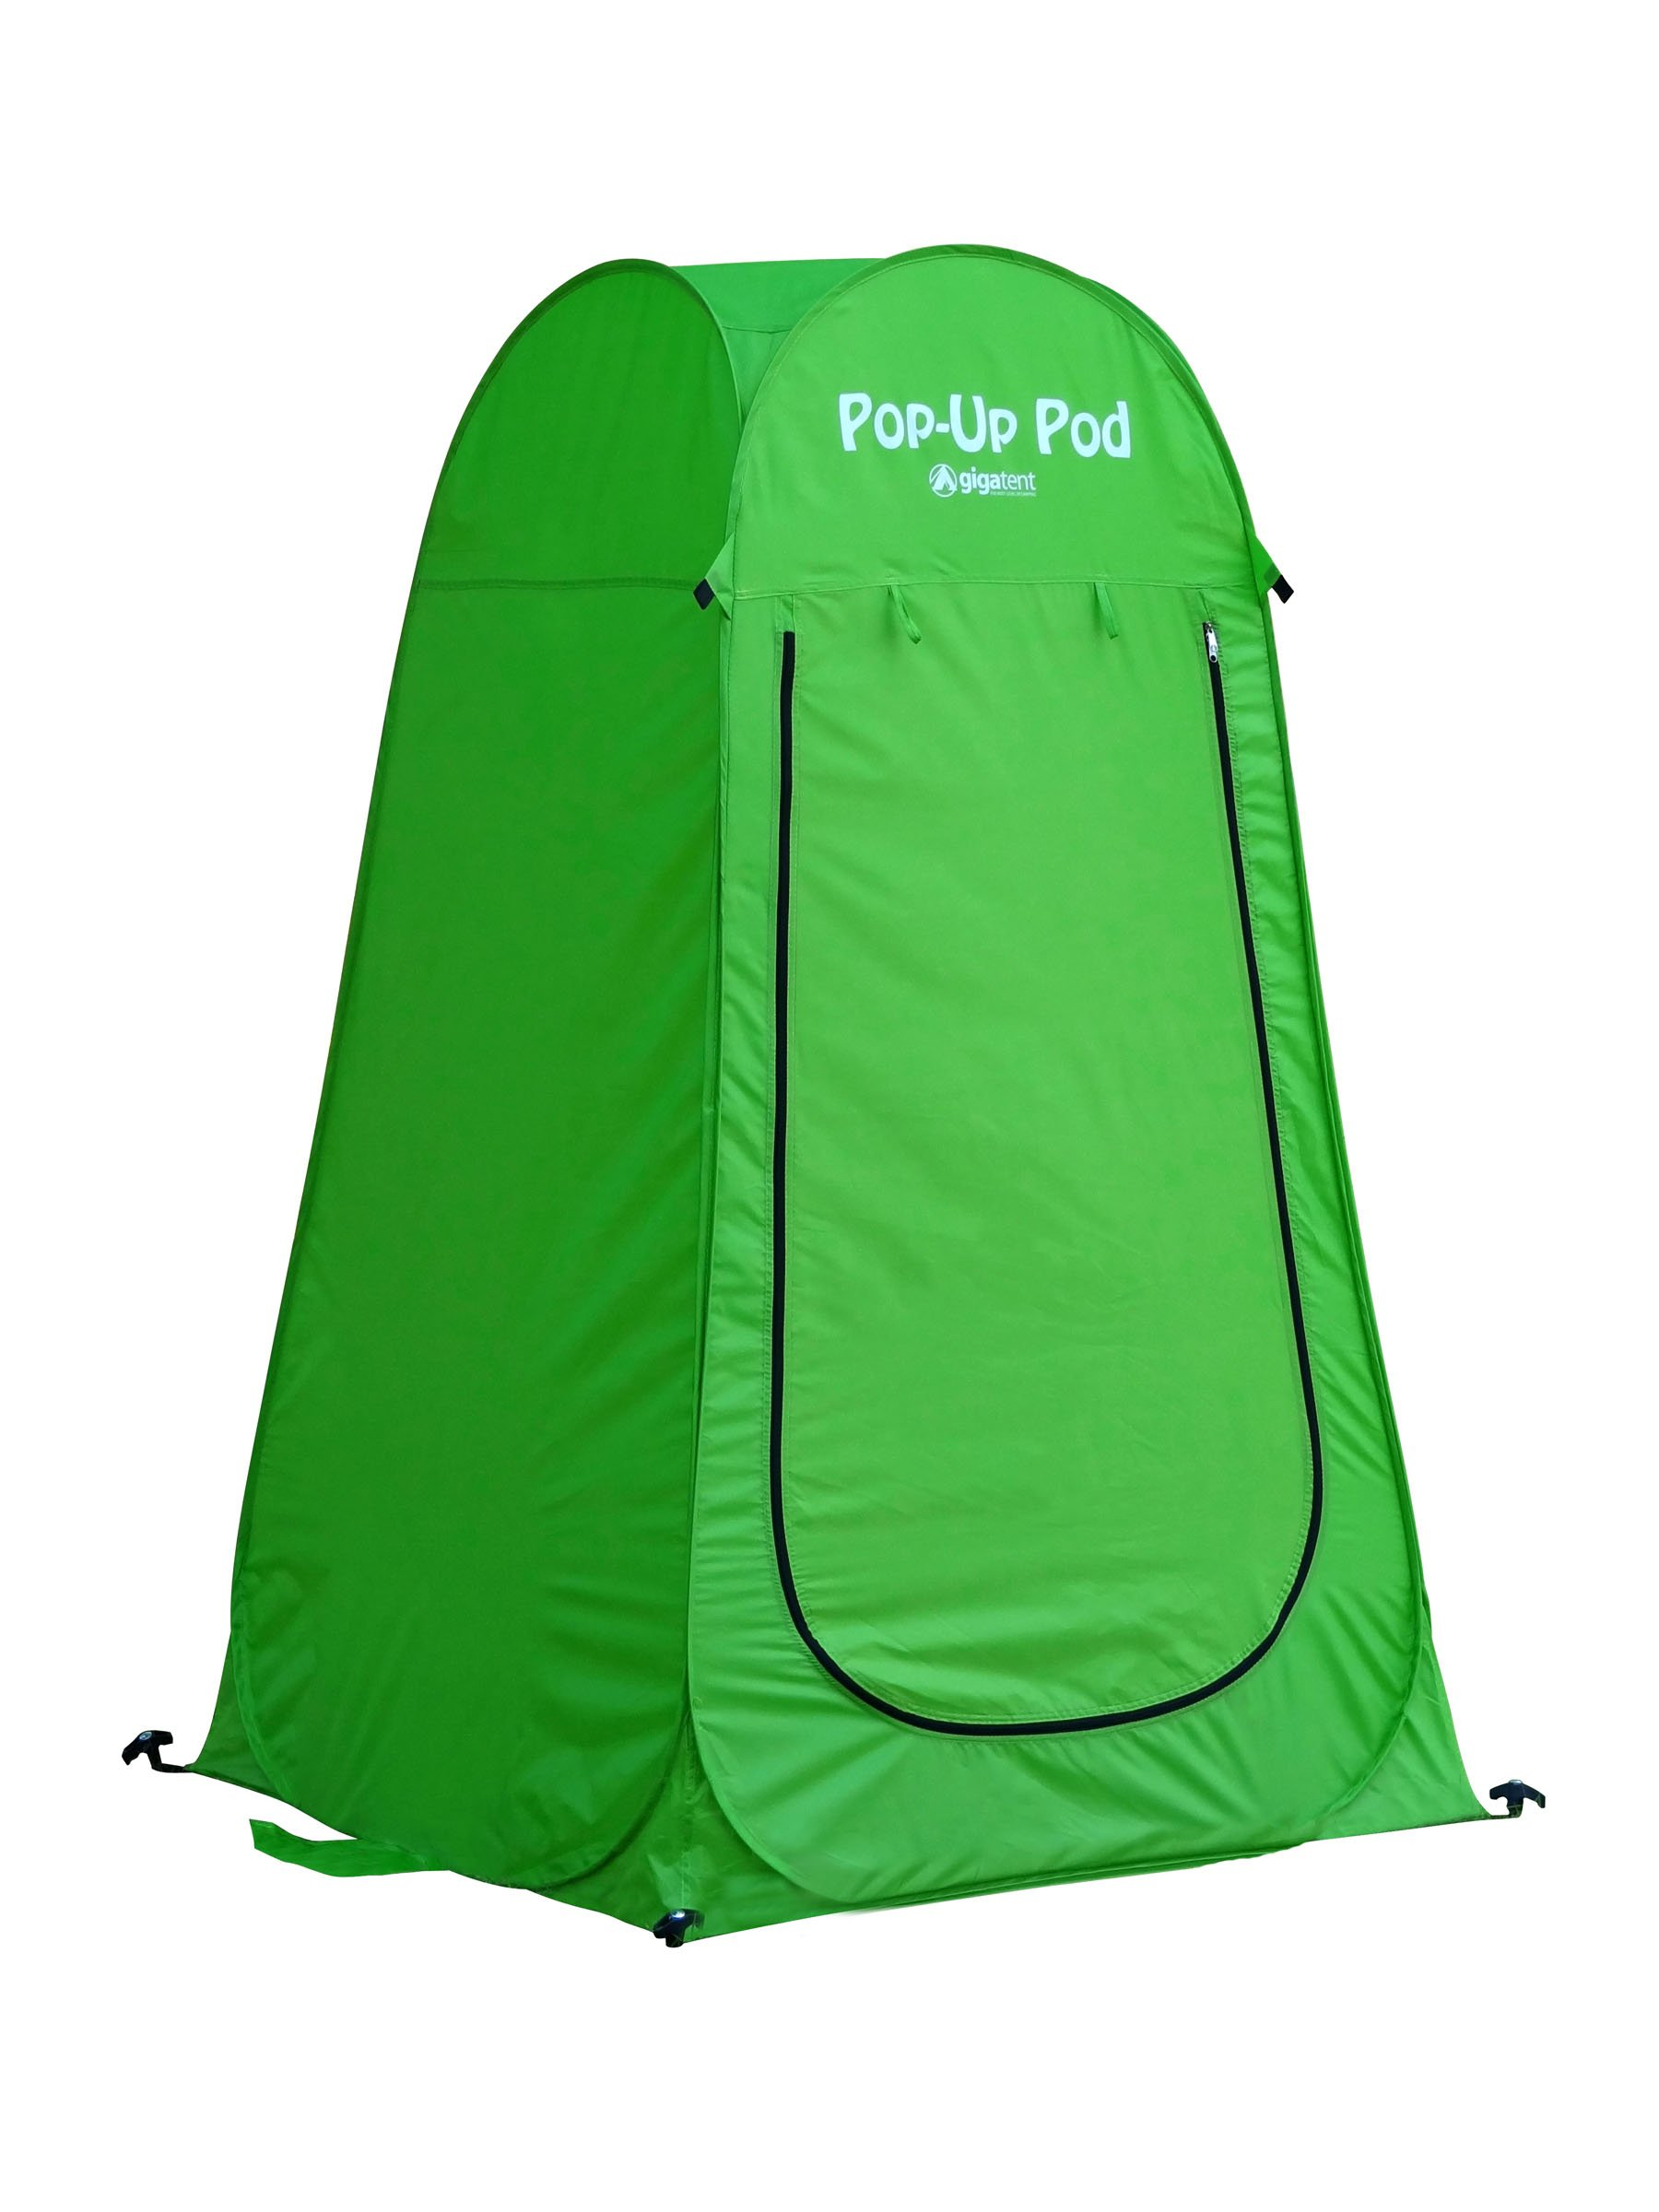 GigaTent Pop Up Pod Changing Room Privacy Tent – Instant Portable Outdoor Shower Tent, Camp Toilet, Rain Shelter for Camping & Beach – Lightweight & Sturdy, Easy Set Up, Foldable - with Carry Bag